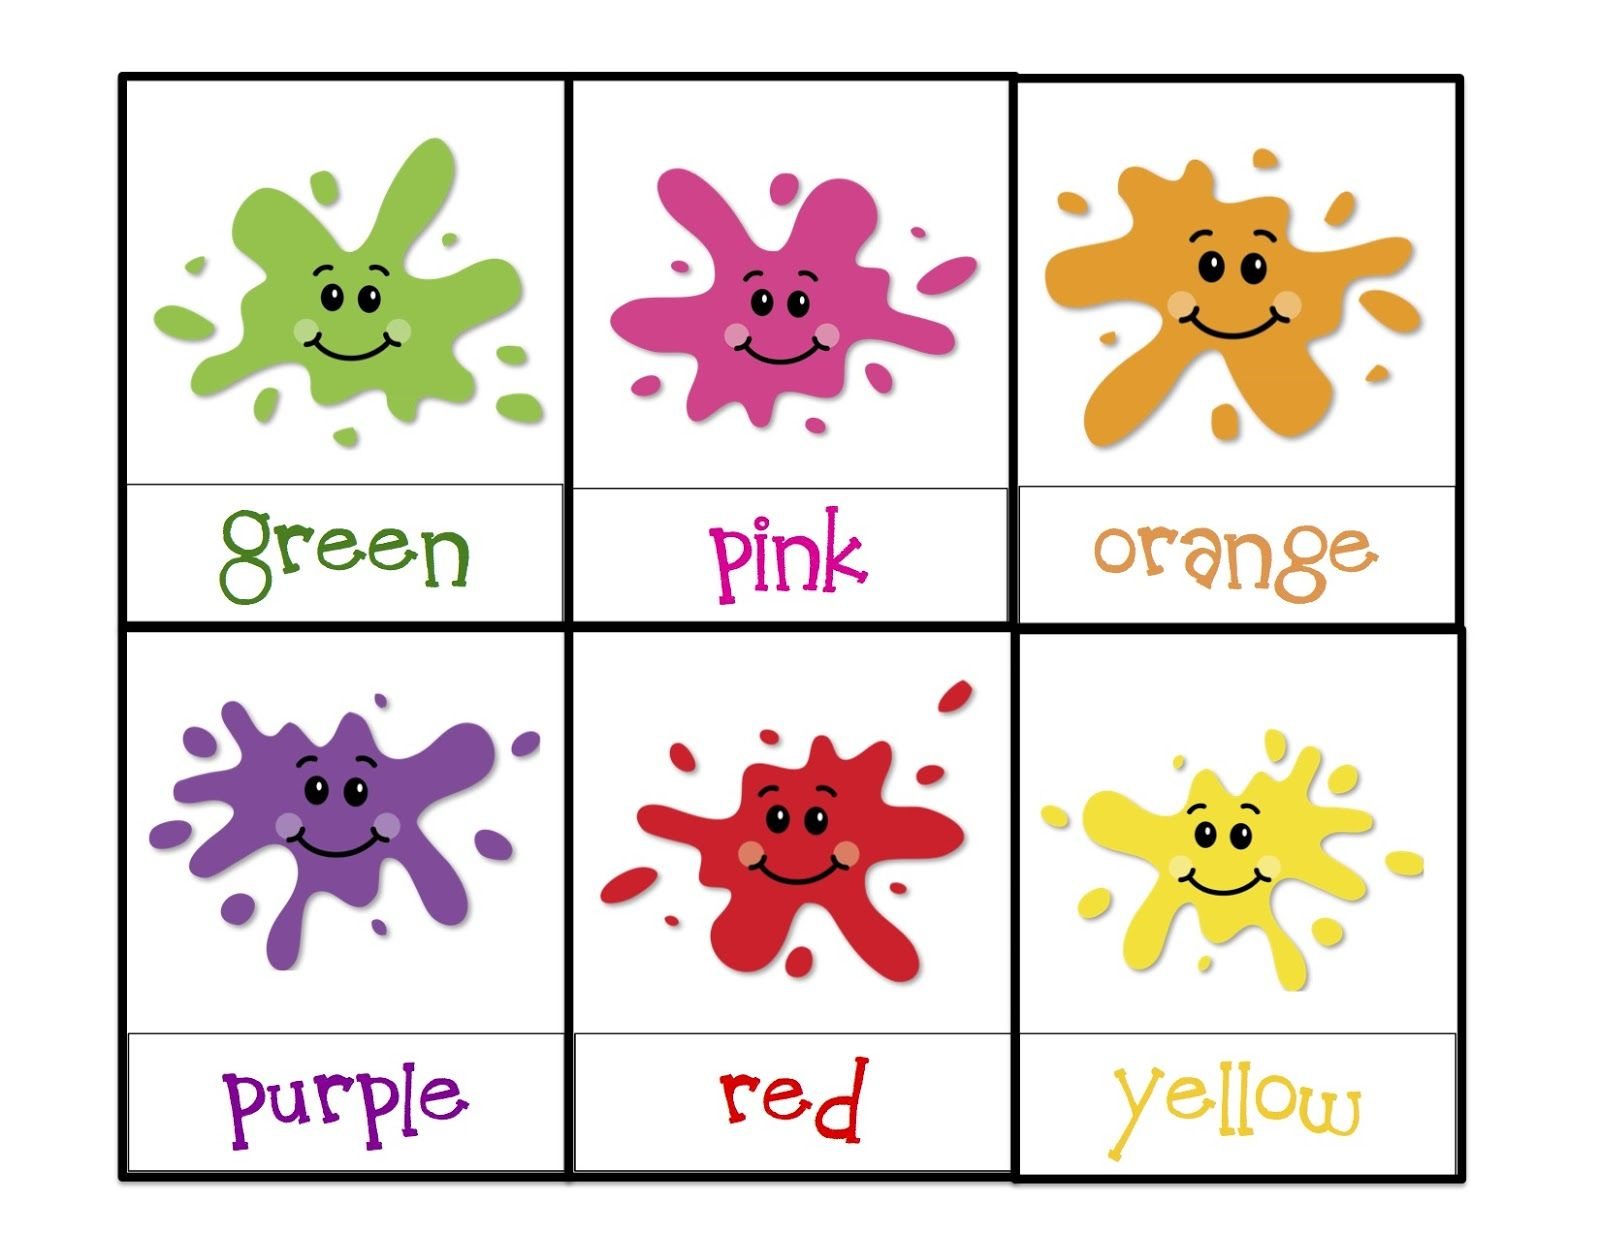 toddler color learning printables learning colors printable - Toddler Activities Printables